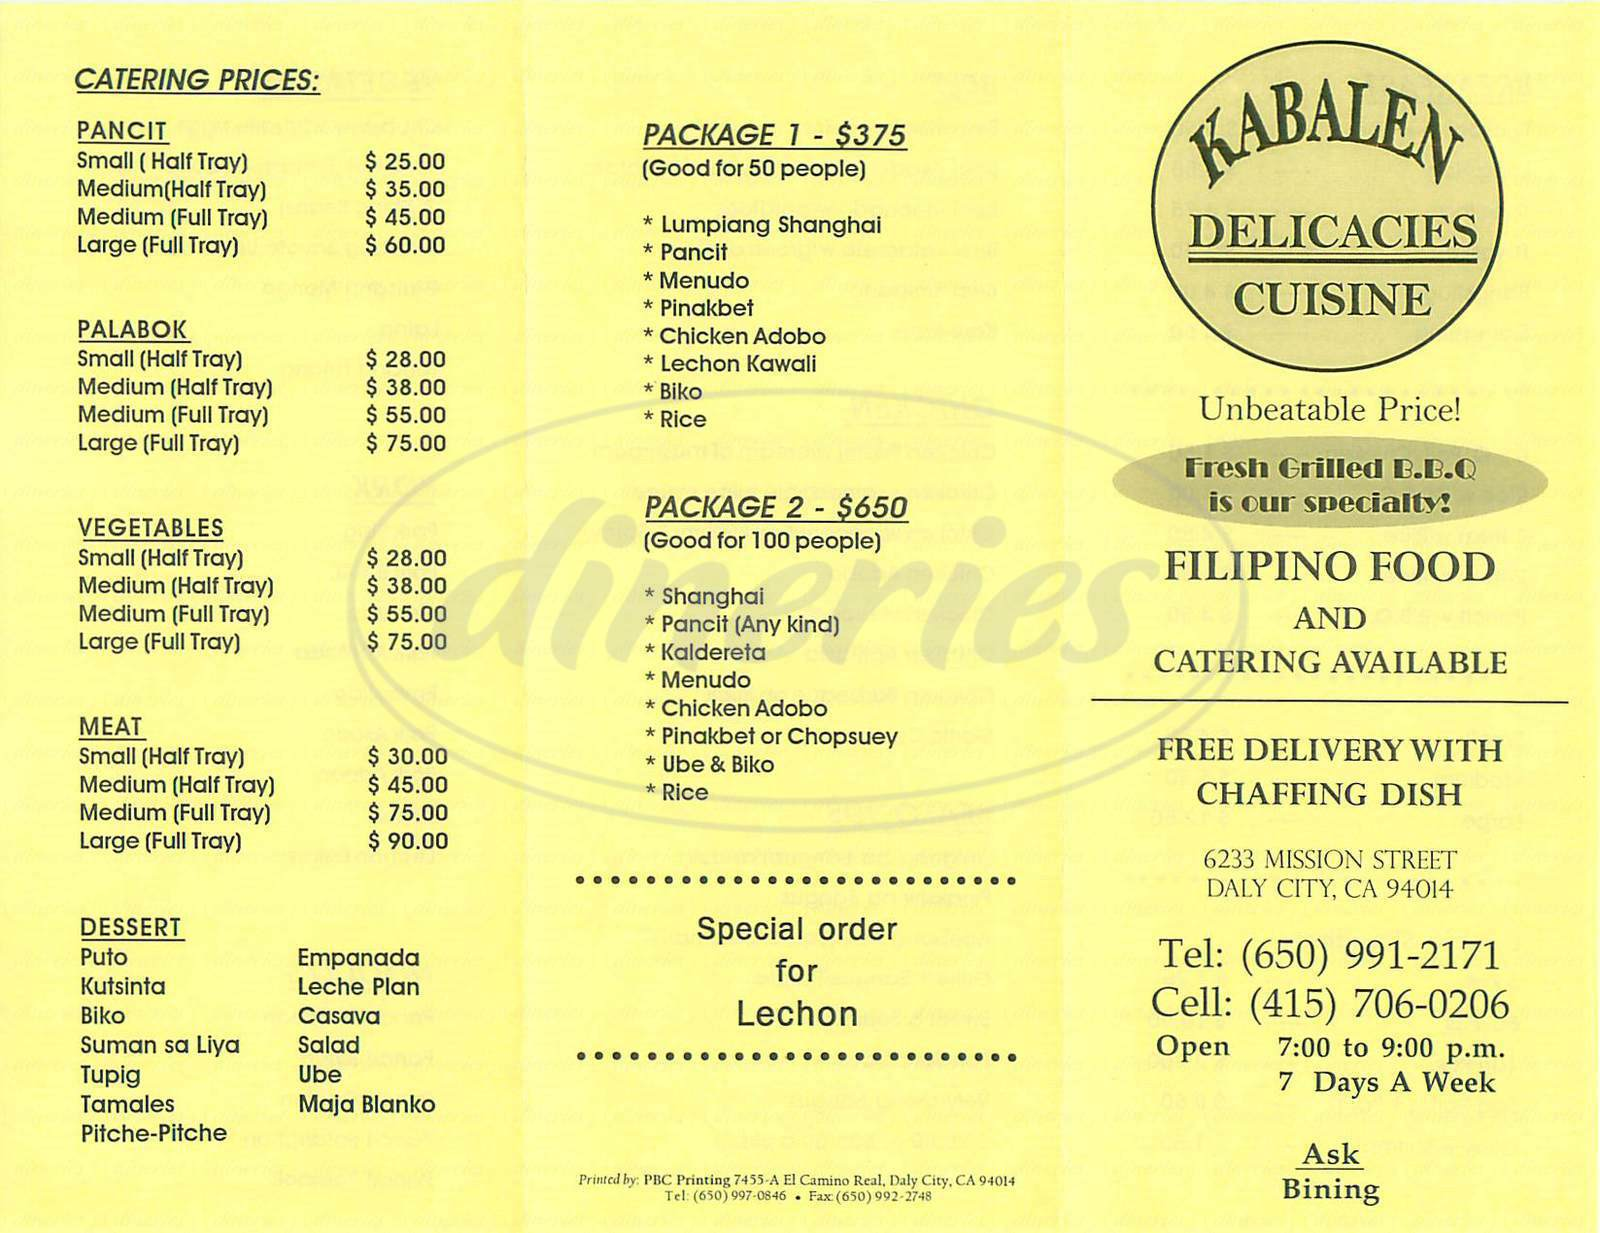 menu for Kabalen Delicacies Cuisine